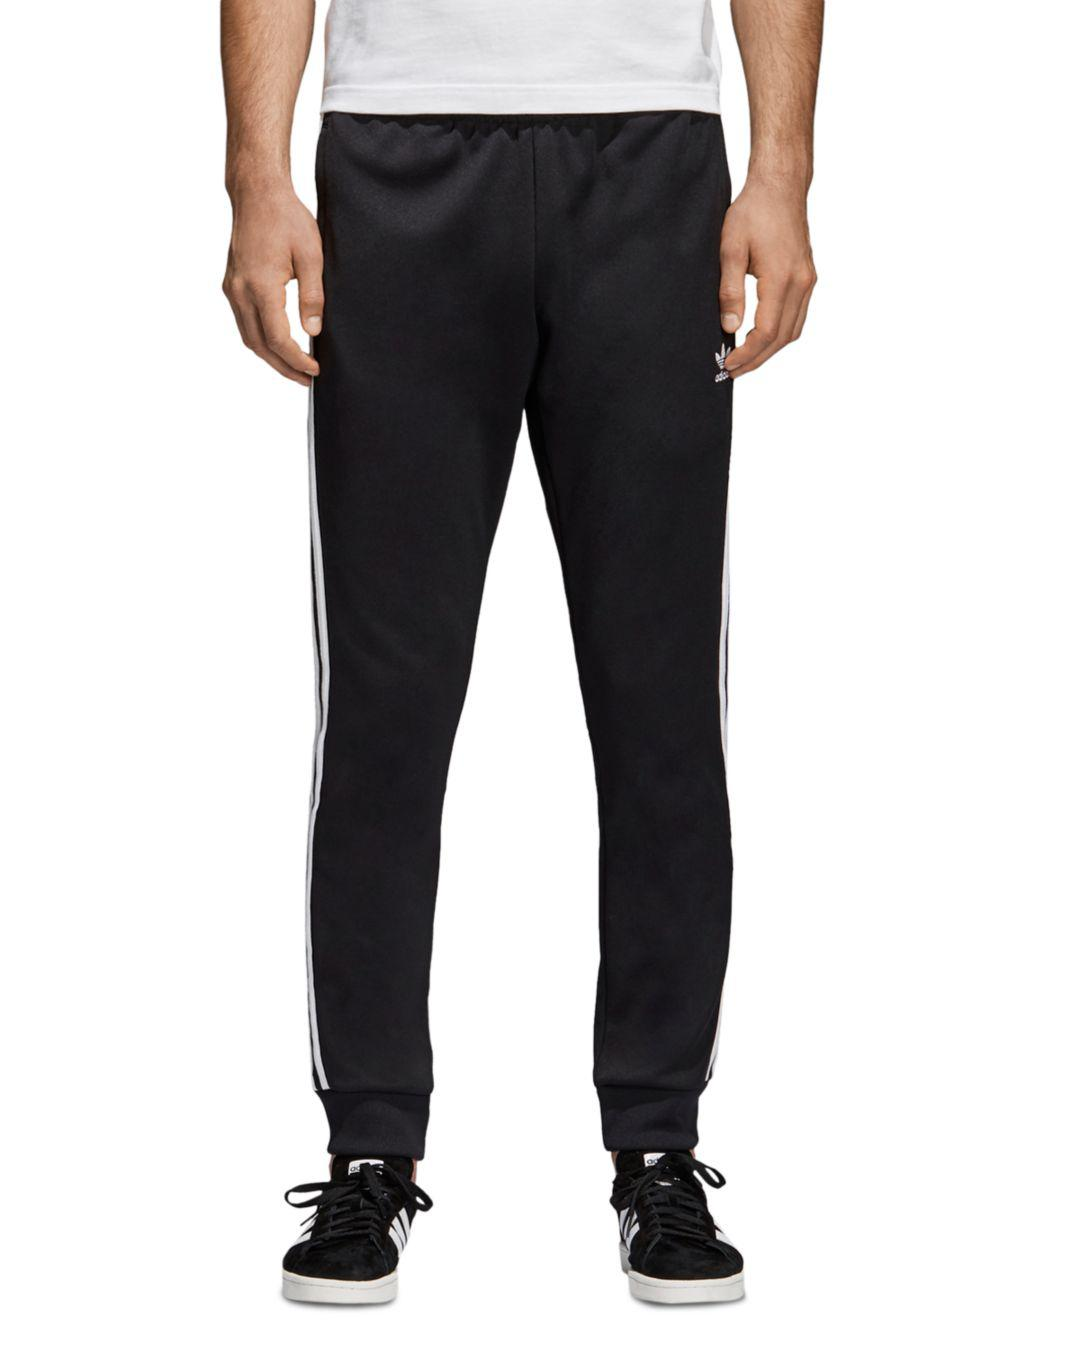 81e113ec7 adidas Originals Superstar Track Pants in Black for Men - Save 8% - Lyst